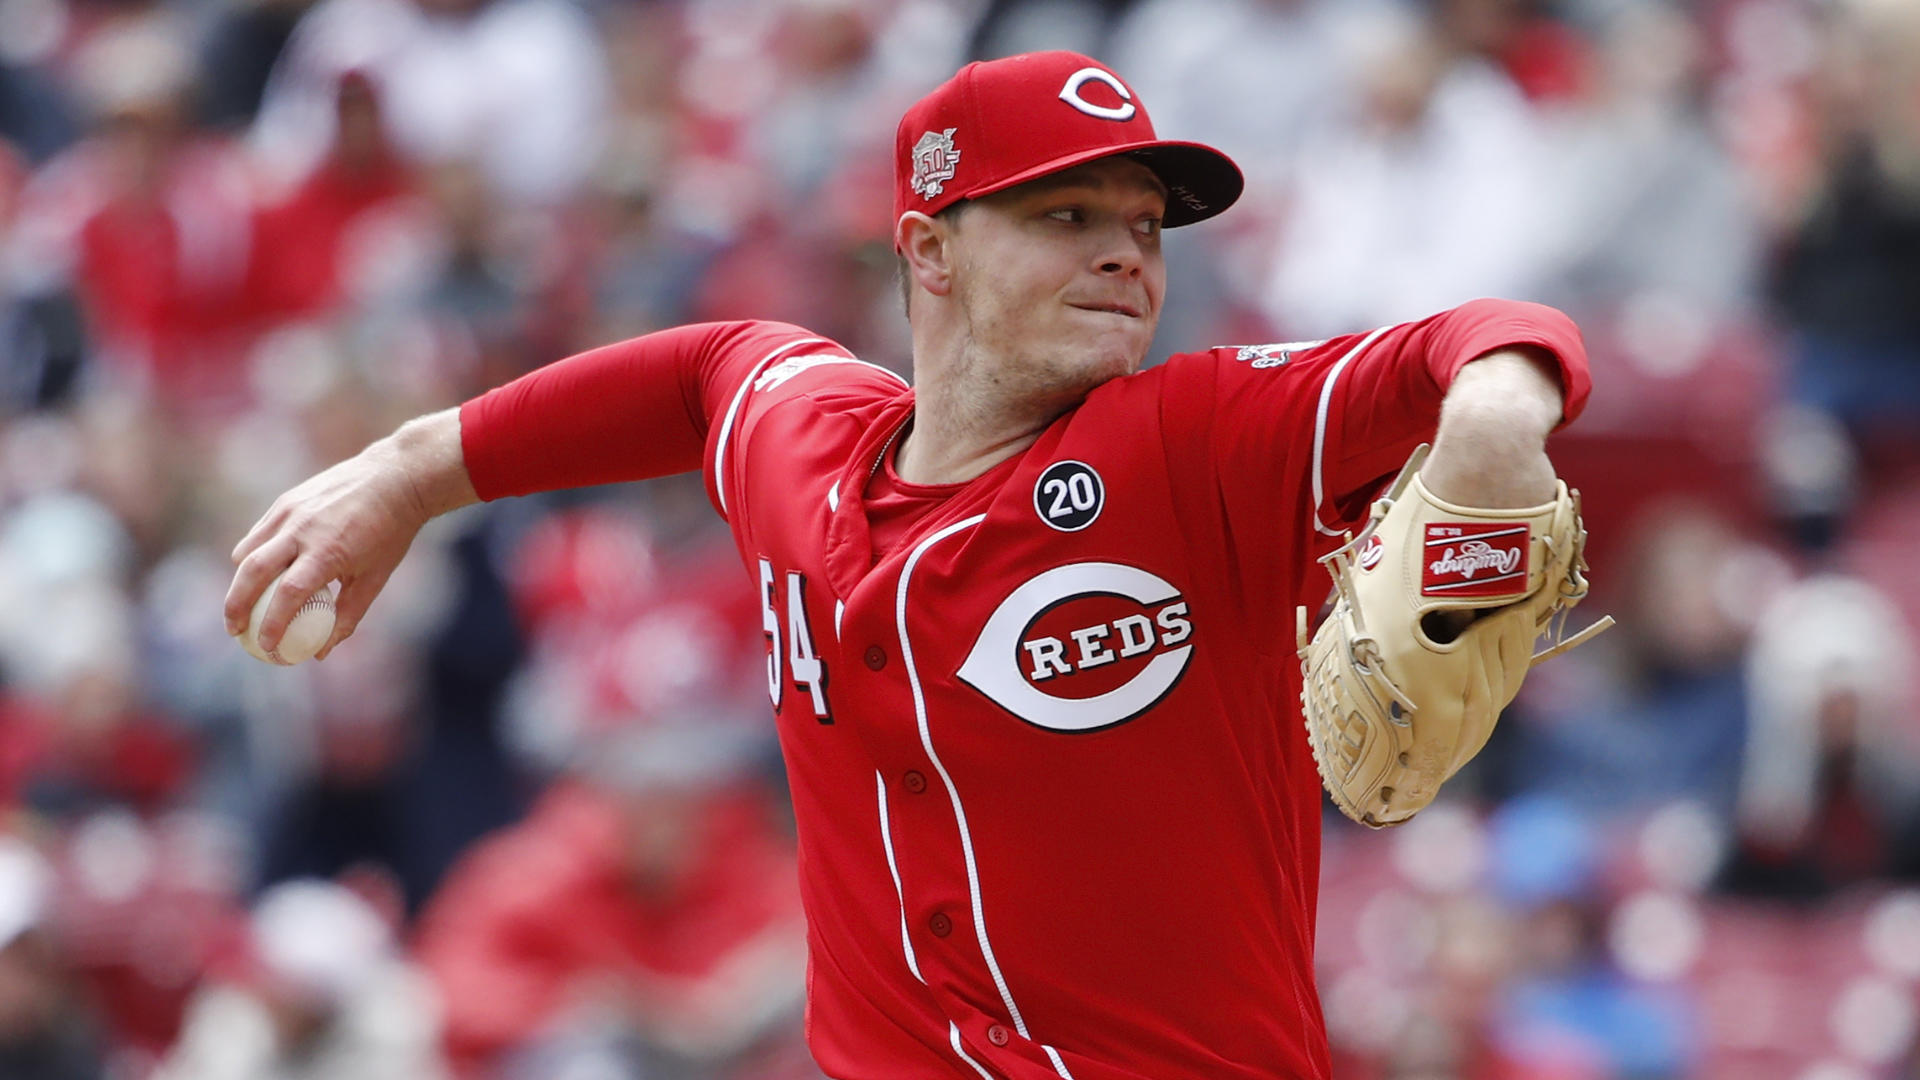 Fantasy Baseball: Two-start pitcher rankings for Week 10 now include Nick Pivetta along with sleepers Lance Lynn, Sonny Gray